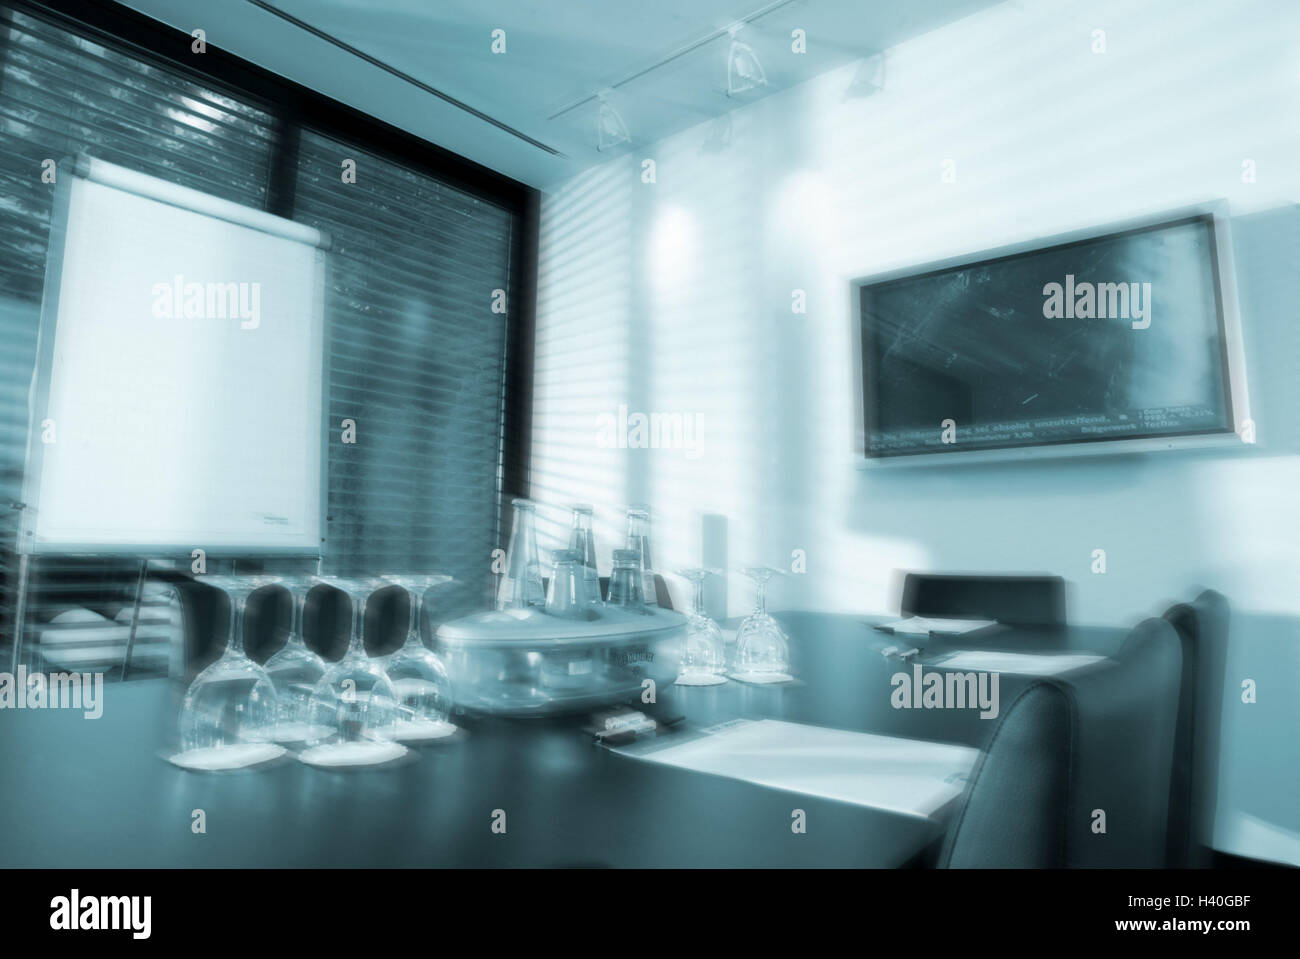 office meeting room. Meeting Room, Conference Table, Flipchart, Blur, Monochrome Office, Meeting, Conference, Business, Company, Discussion, Office Room